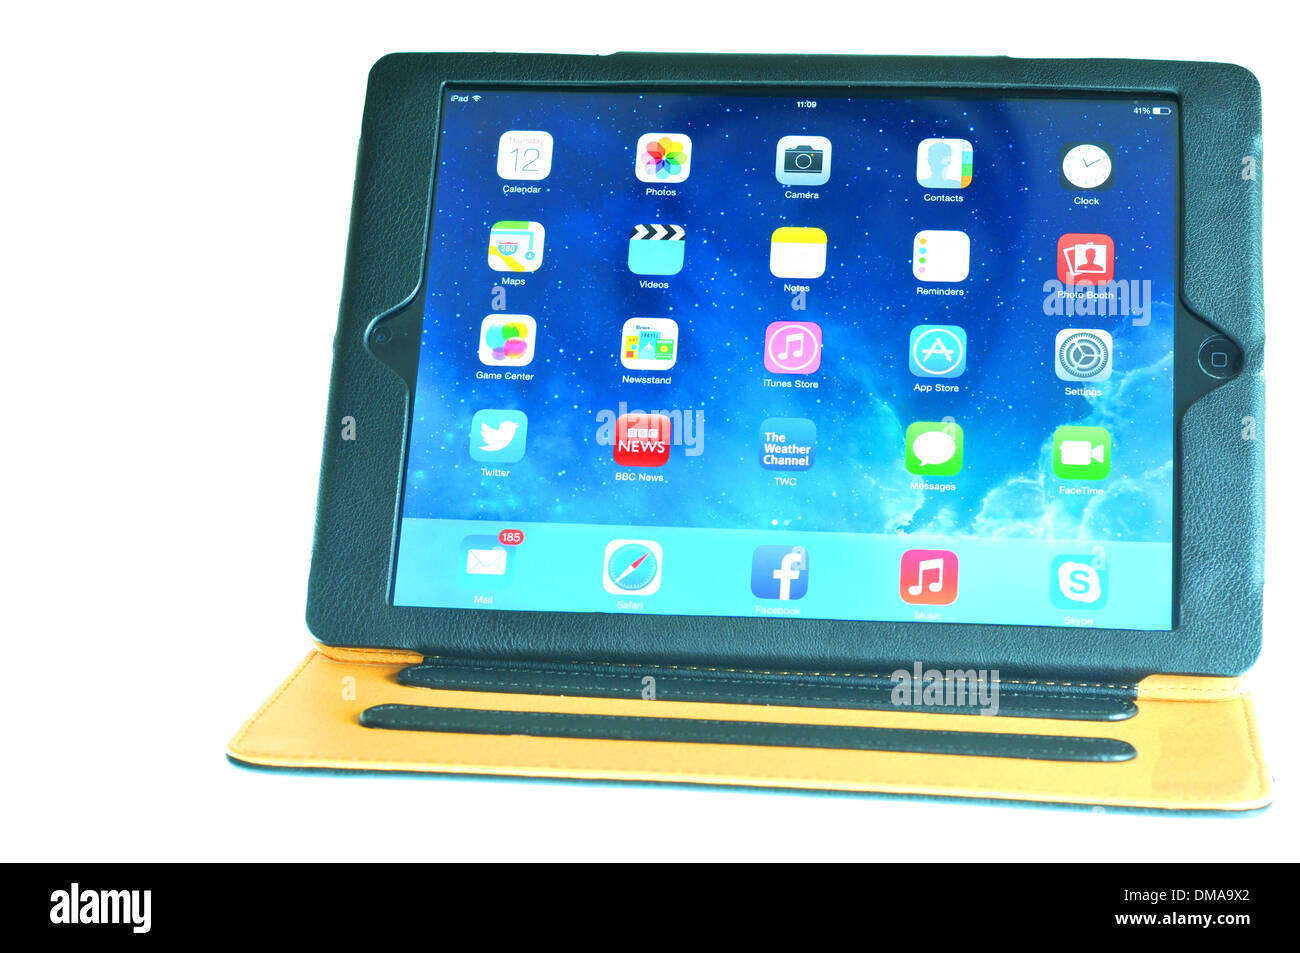 London, UK – November 1, 2013: Apple Inc. releases the new iPad Air, the fifth generation iPad tablet computer. - Stock Image